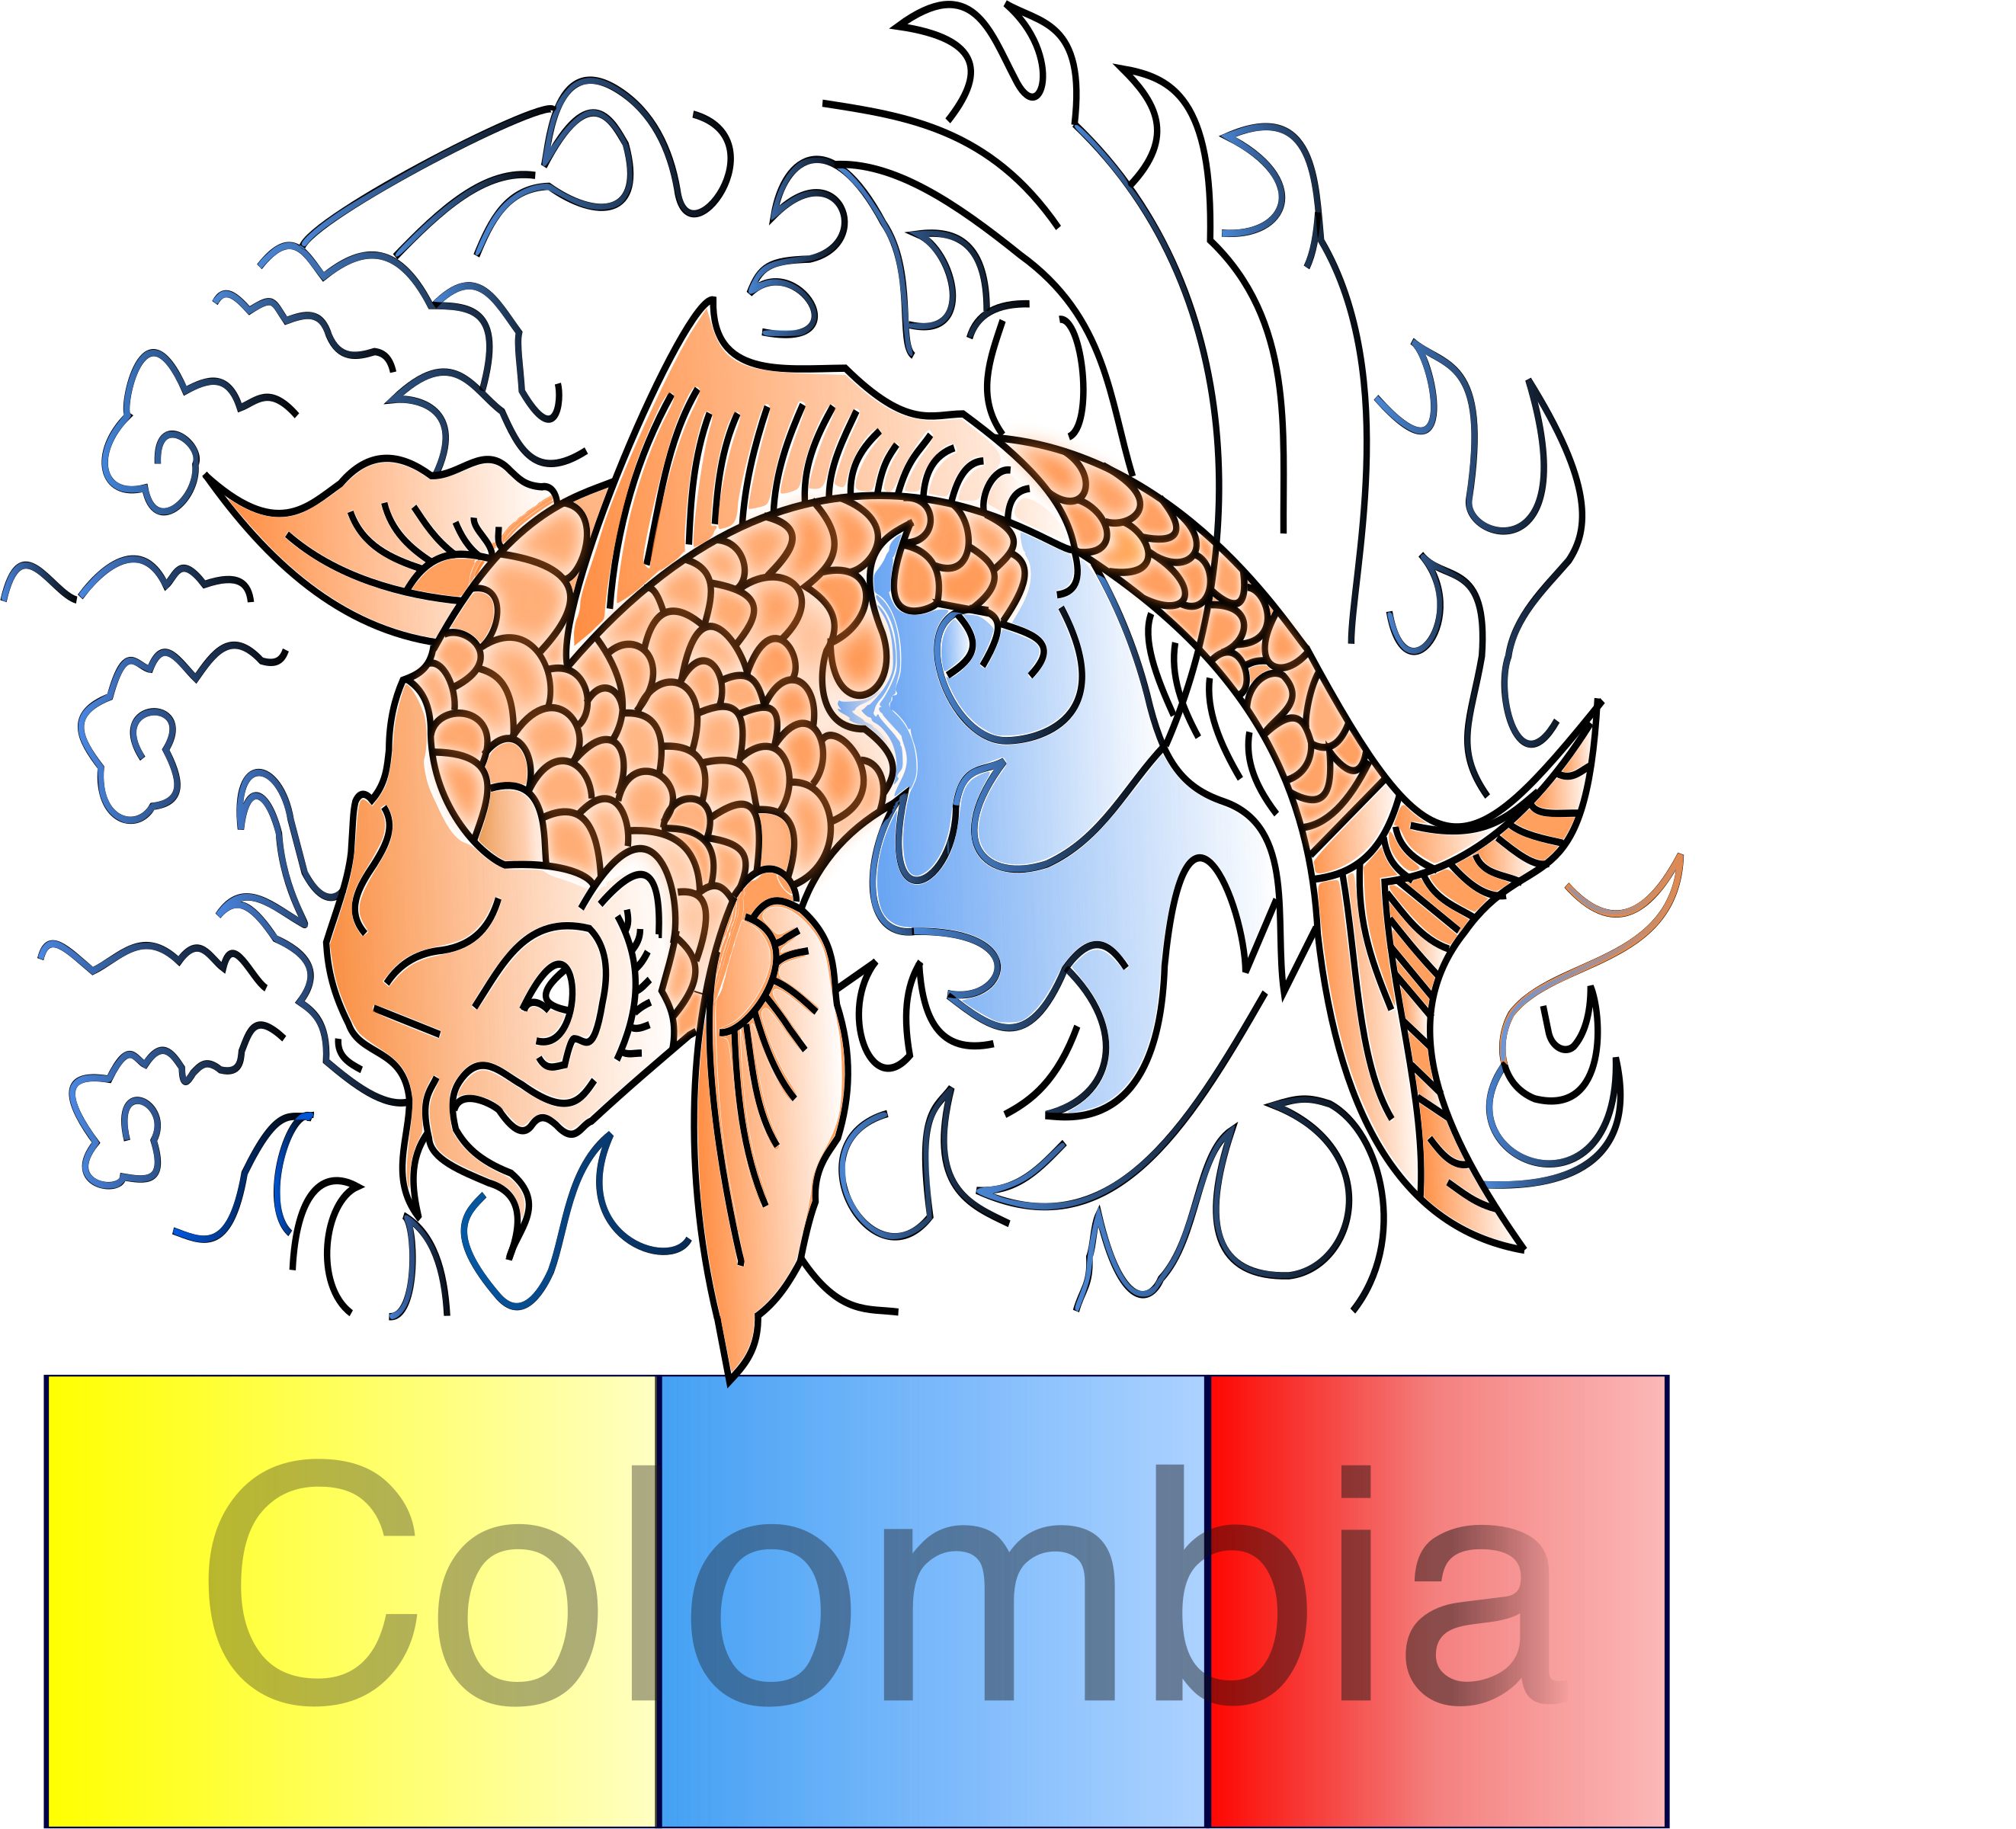 Pez Koi colombiano by Laura Arango ._.